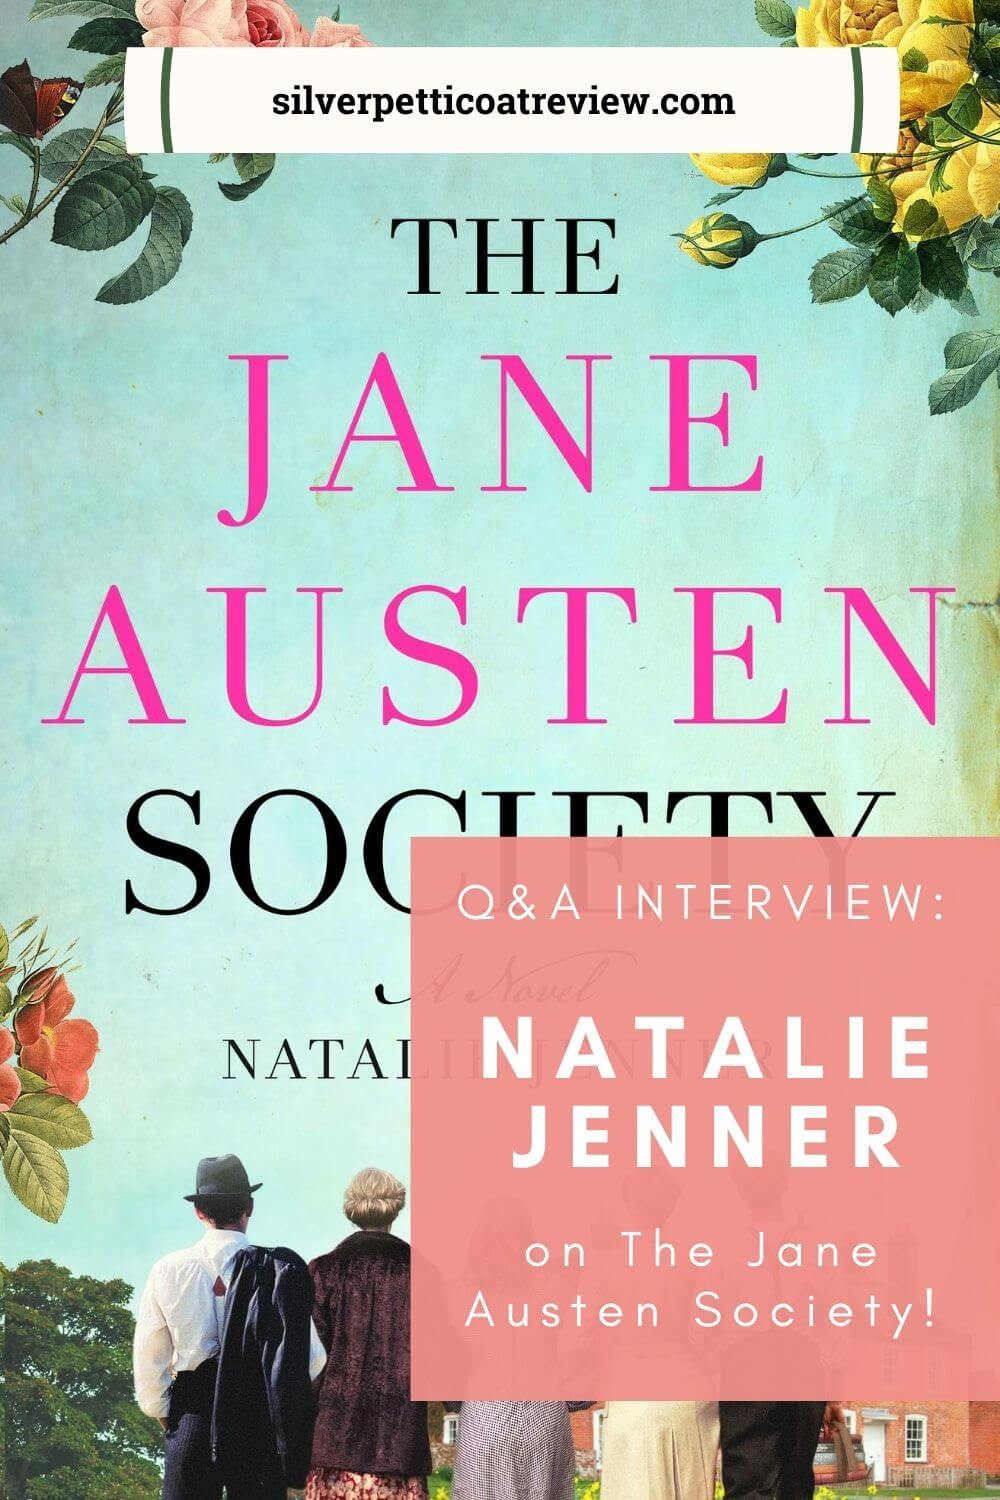 Q&A Interview: Natalie Jenner on 'The Jane Austen Society' - Pinterest image